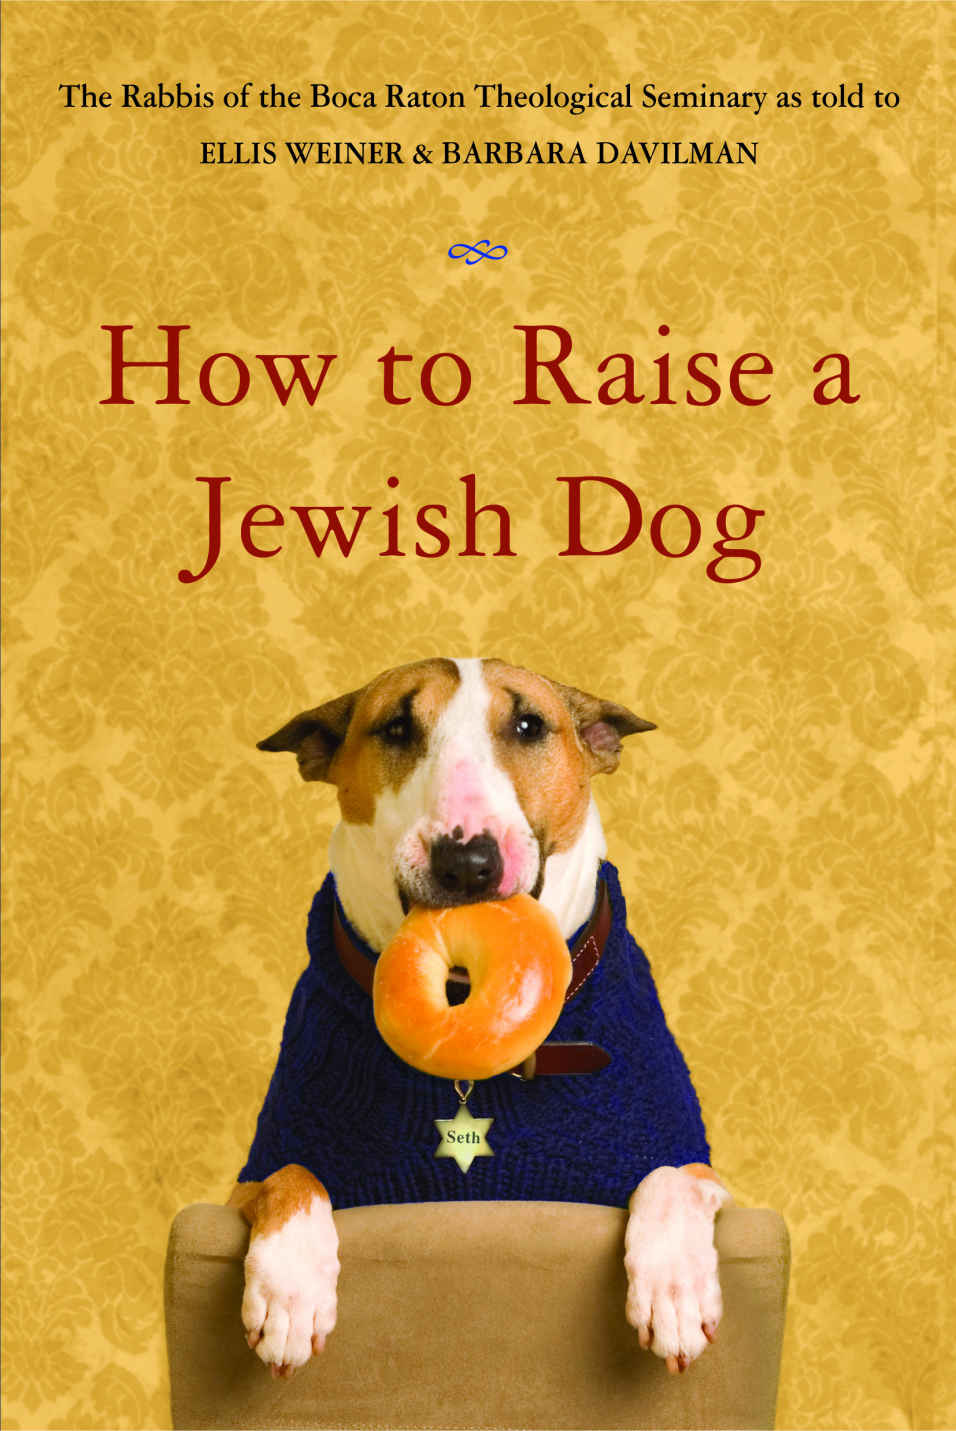 how to raise a jewish dog book-1